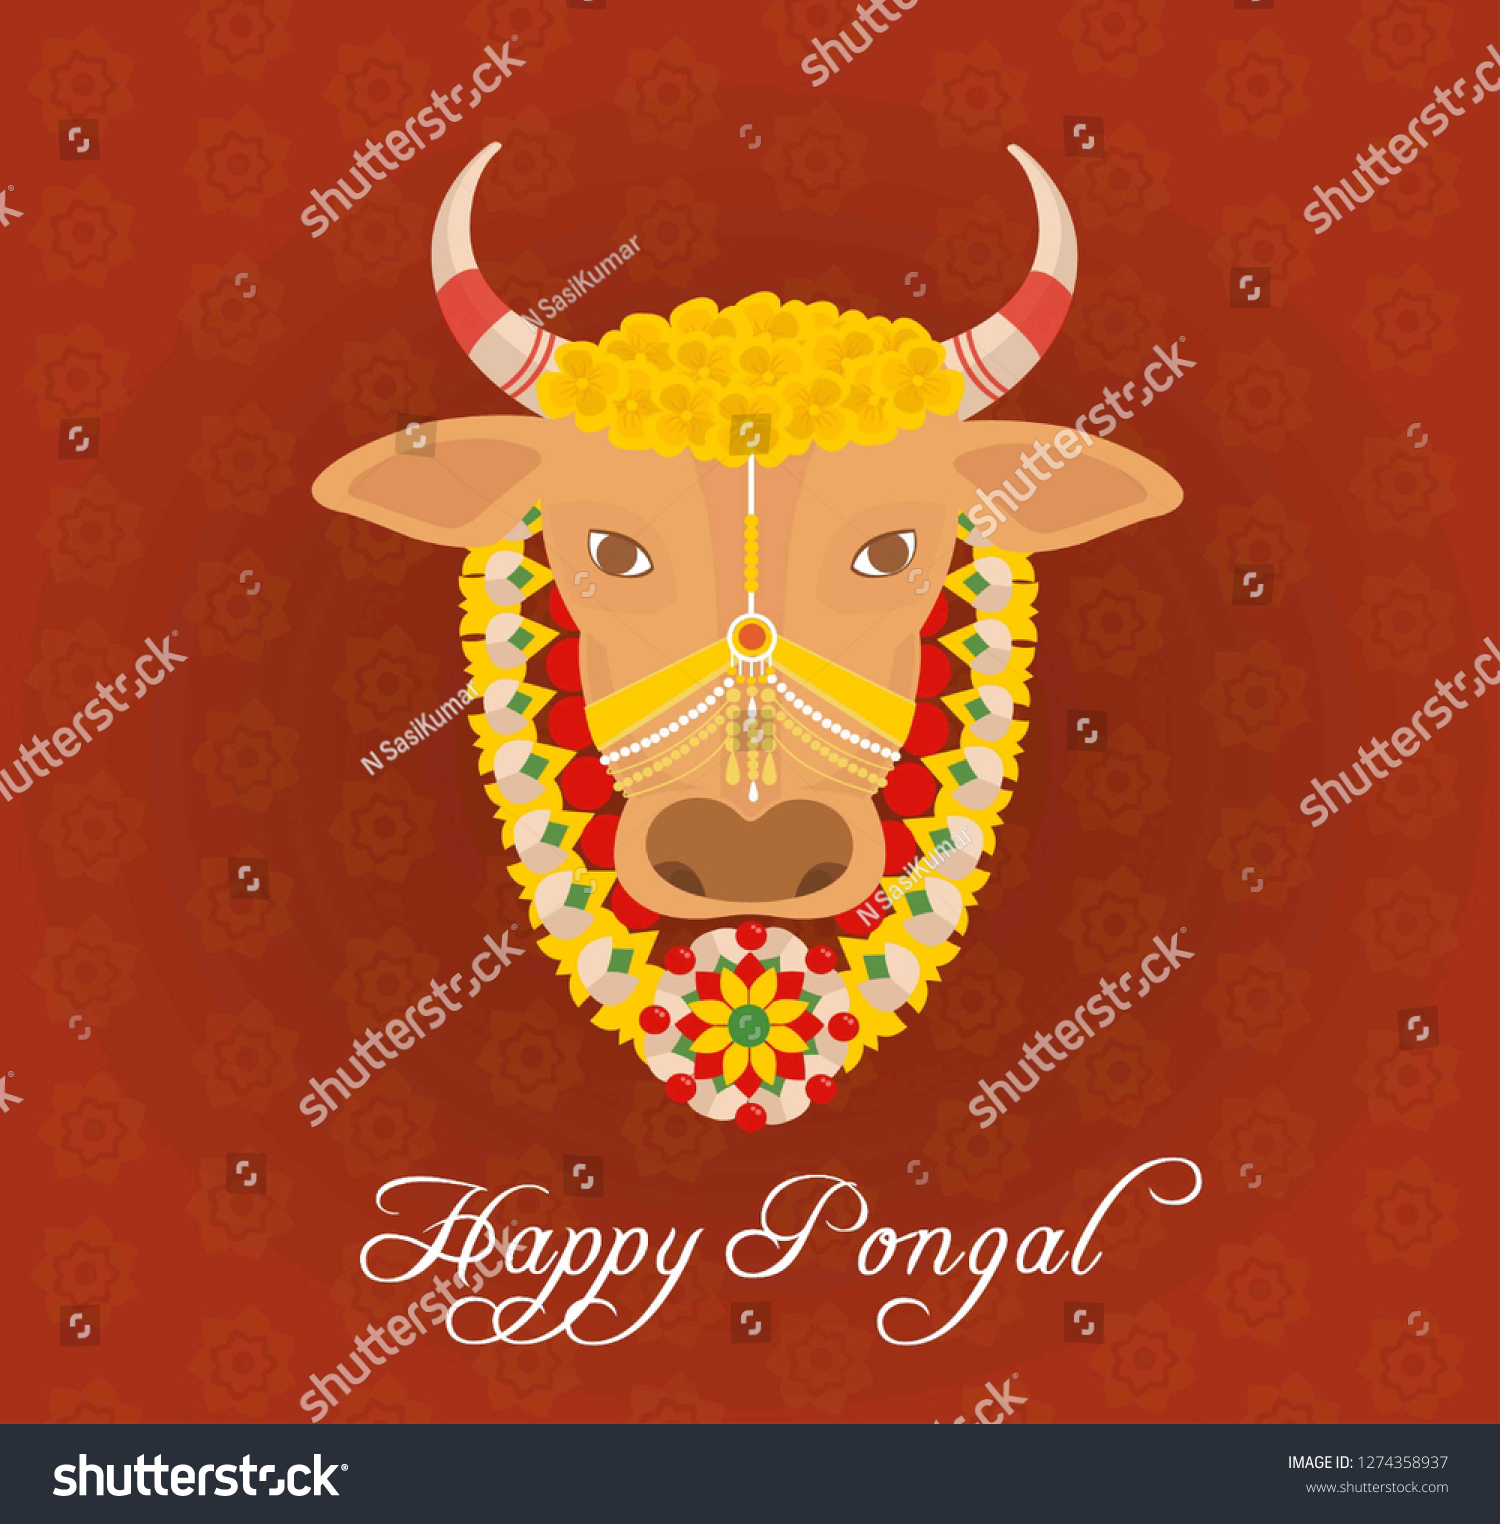 Happy pongal 2019 card with designed jallikattu cow background